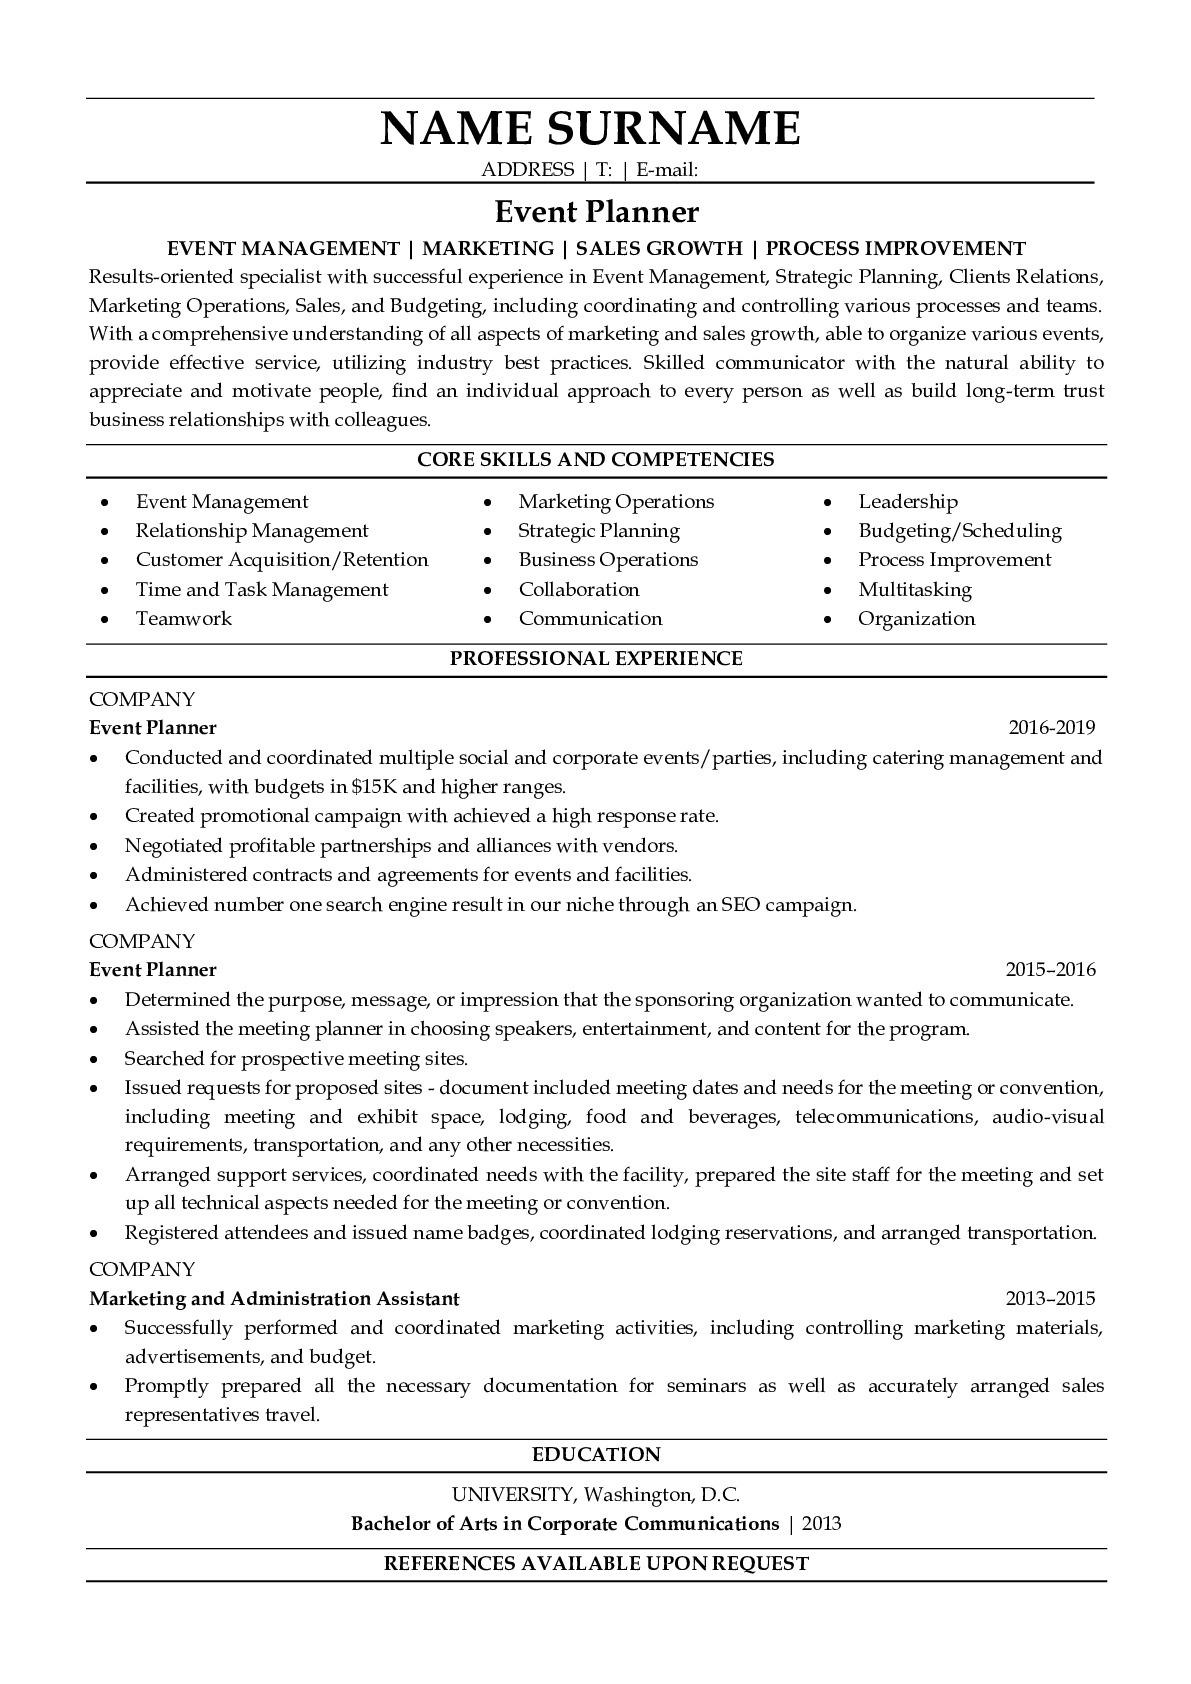 Resume Example for Event Planner